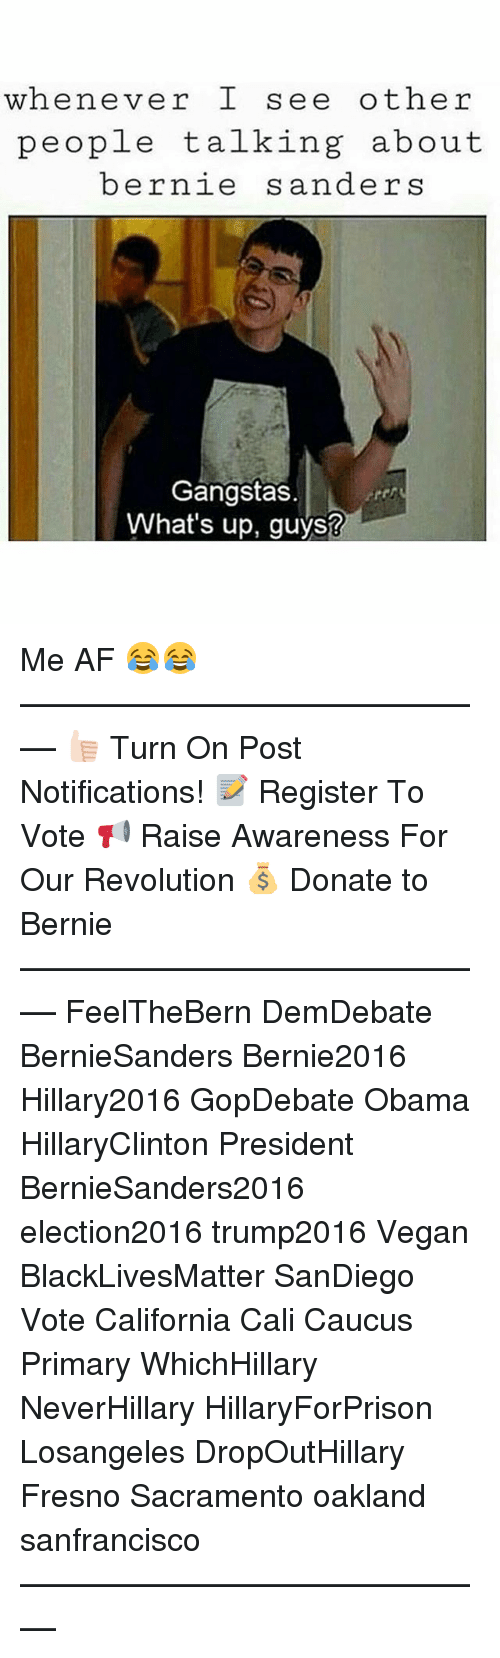 caucuses: whenever I see other  people talking about  bernie  s anders  Gangstas  What's up, guys? Me AF 😂😂 ––––––––––––––––––––––––––– 👍🏻 Turn On Post Notifications! 📝 Register To Vote 📢 Raise Awareness For Our Revolution 💰 Donate to Bernie ––––––––––––––––––––––––––– FeelTheBern DemDebate BernieSanders Bernie2016 Hillary2016 GopDebate Obama HillaryClinton President BernieSanders2016 election2016 trump2016 Vegan BlackLivesMatter SanDiego Vote California Cali Caucus Primary WhichHillary NeverHillary HillaryForPrison Losangeles DropOutHillary Fresno Sacramento oakland sanfrancisco –––––––––––––––––––––––––––